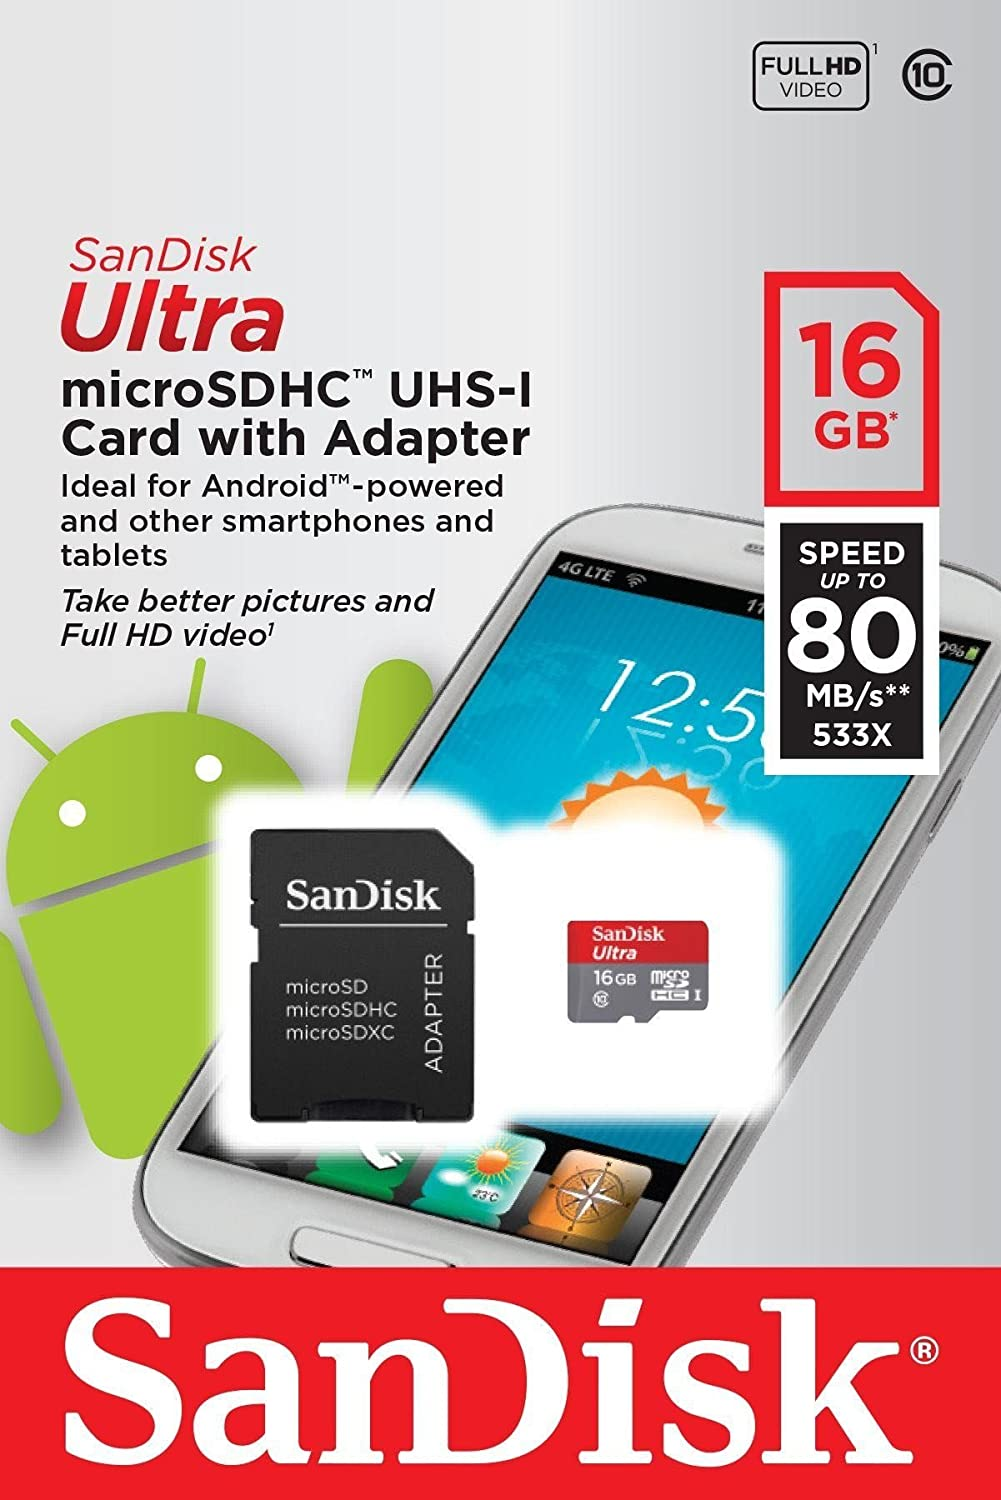 Professional Ultra SanDisk 16GB verified for Samsung Galaxy Express 2 MicroSDHC card with CUSTOM Hi-Speed UHS-1 A1 Class 10 Certified 98MB//s Includes Standard SD Adapter. Lossless Format